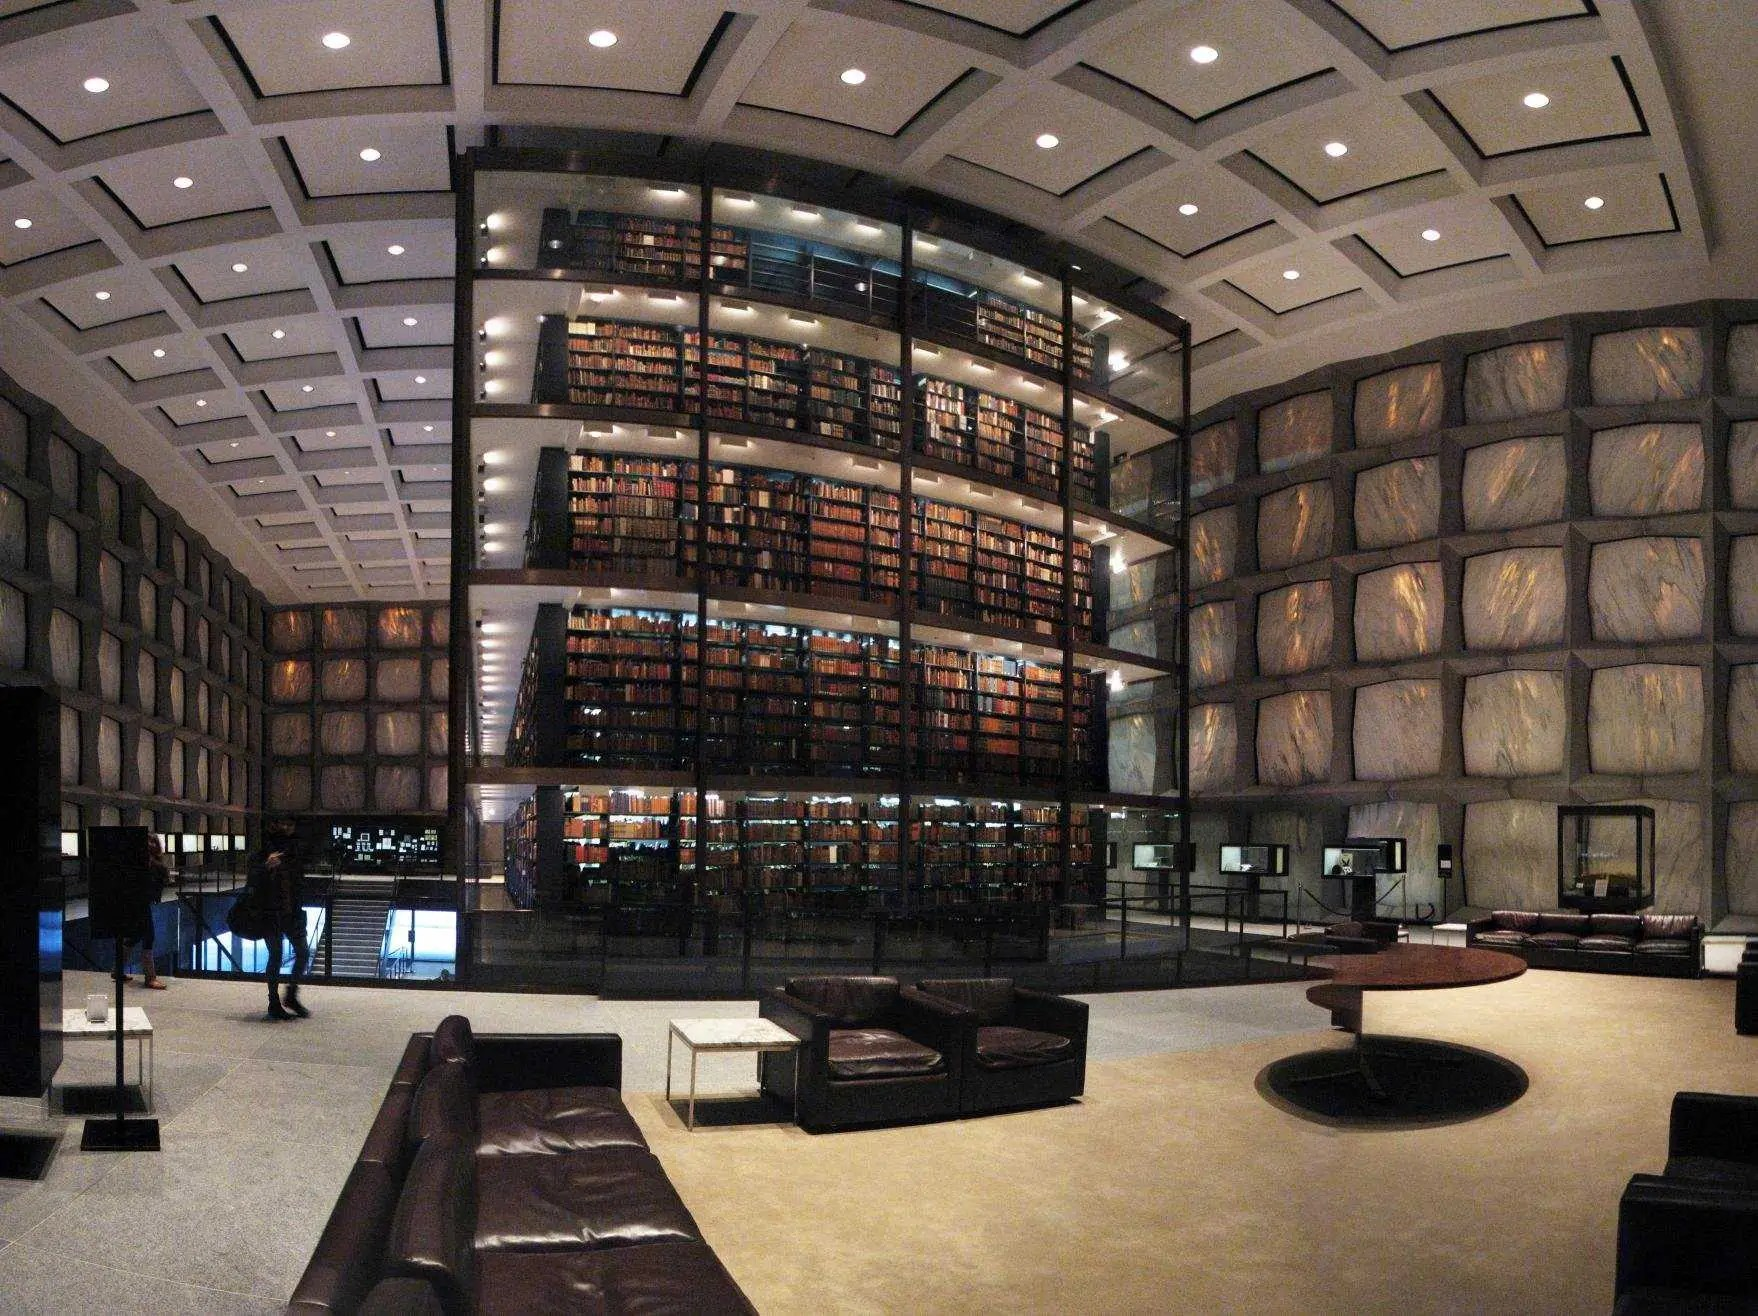 Libraries From Around The World - Beinecke Rare Book